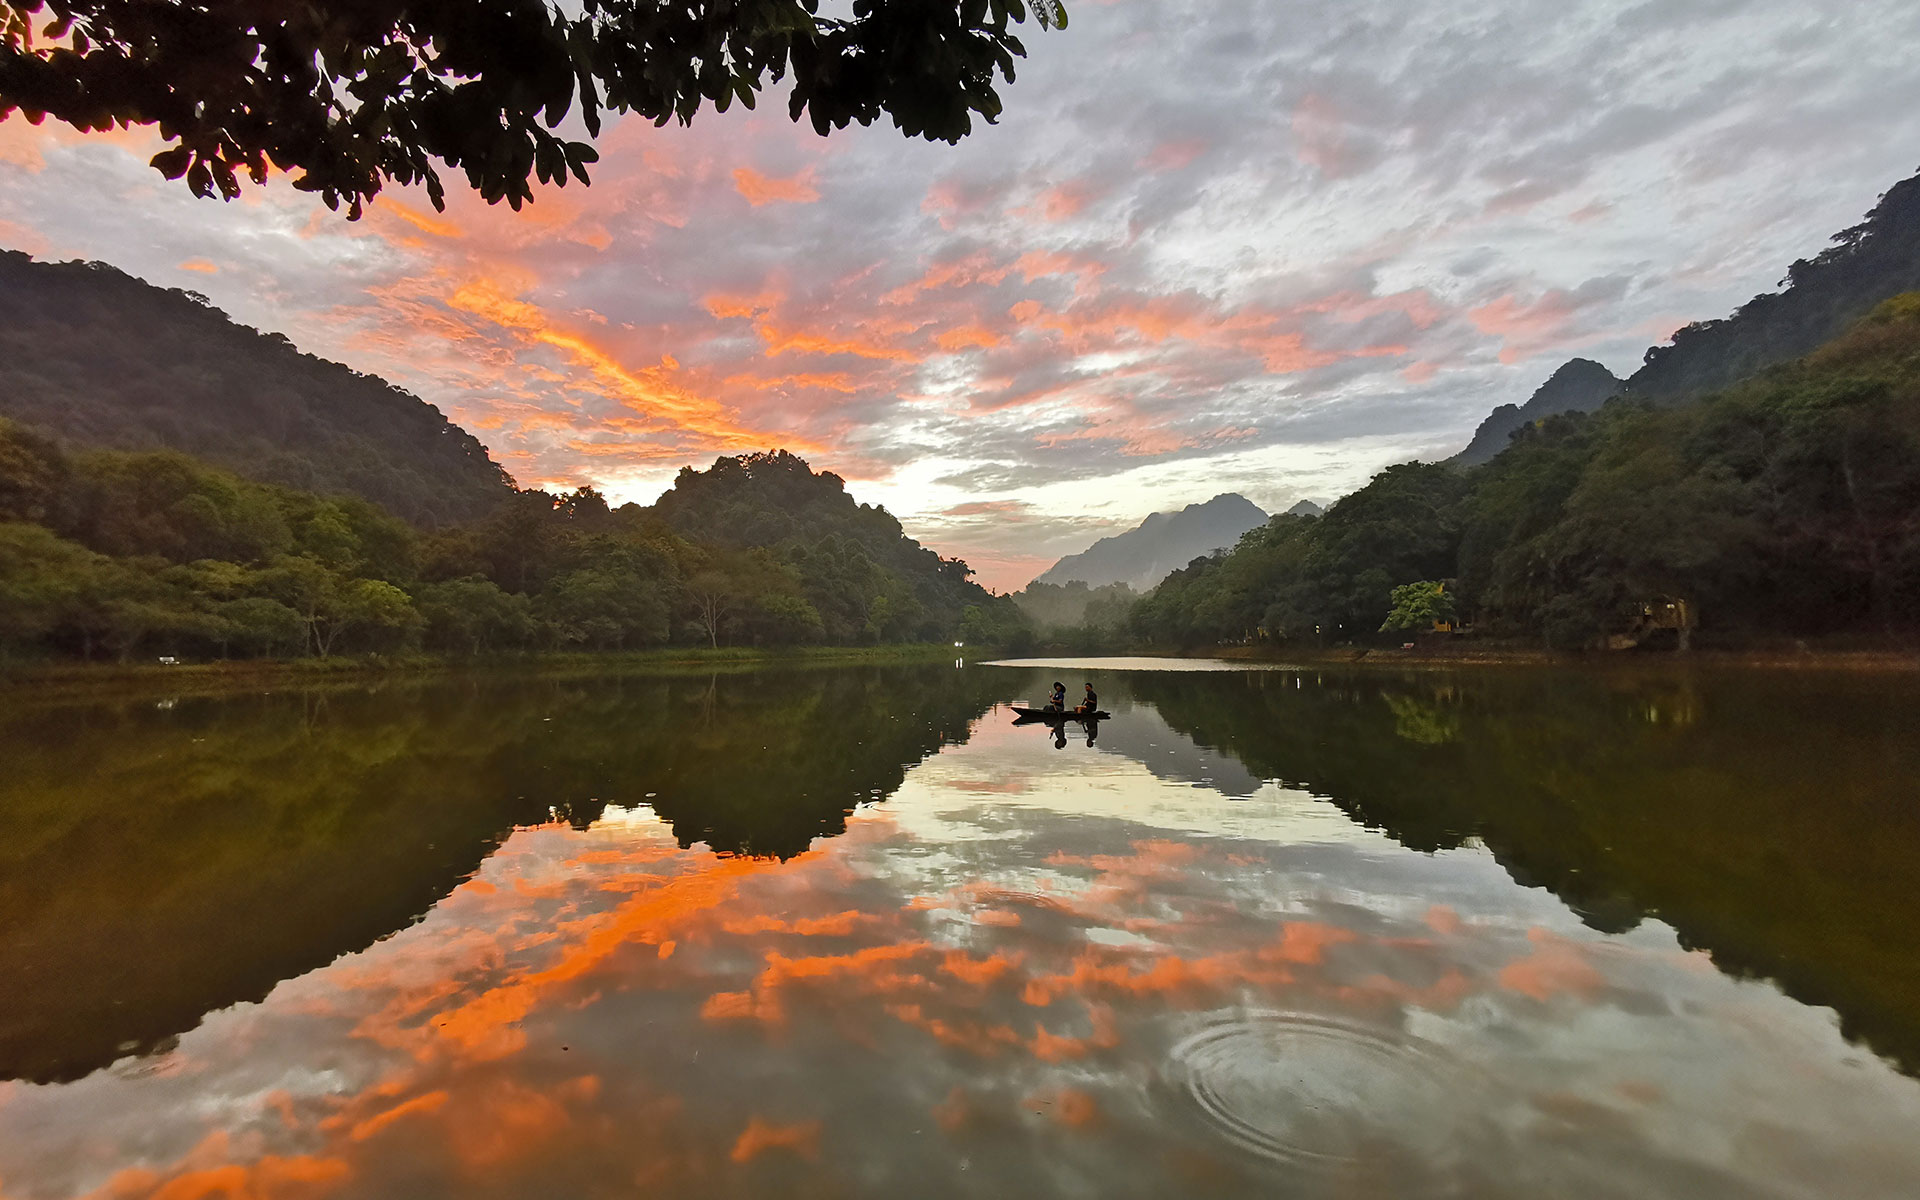 peaceful scenery of Cuc Phuong national park